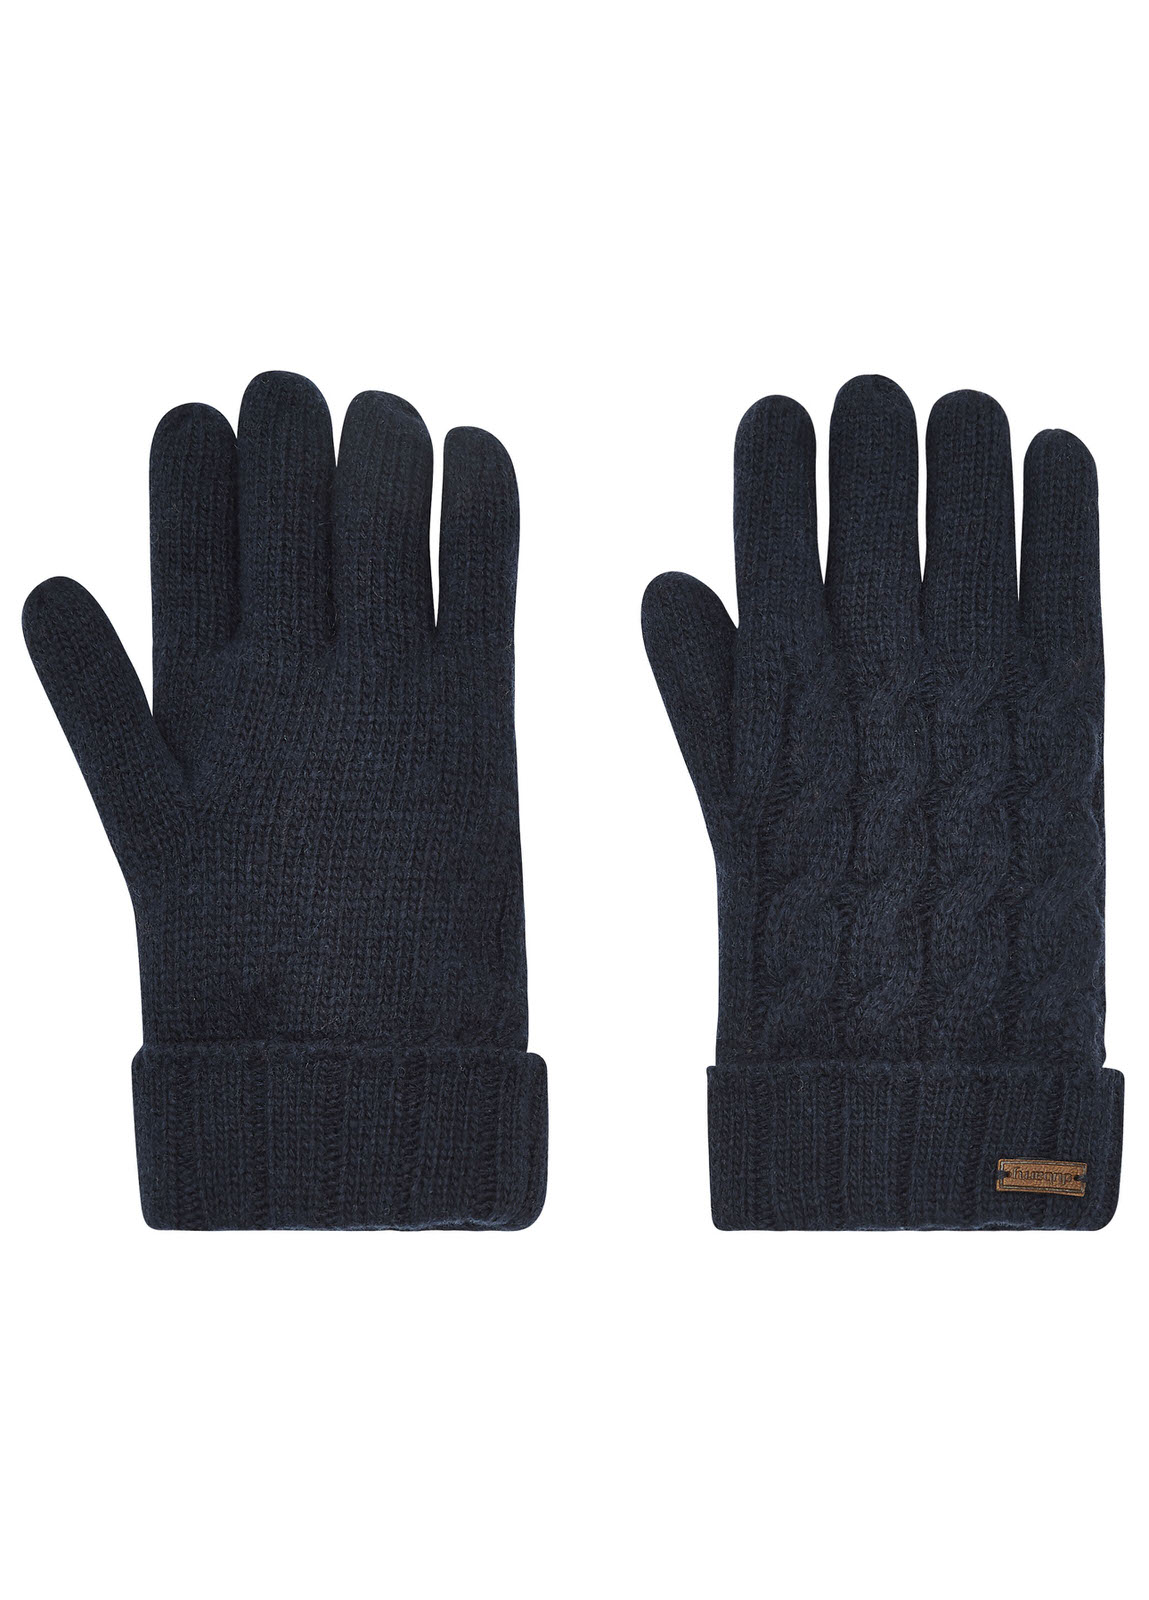 Buckley_Knitted_Gloves_Navy_Image_1